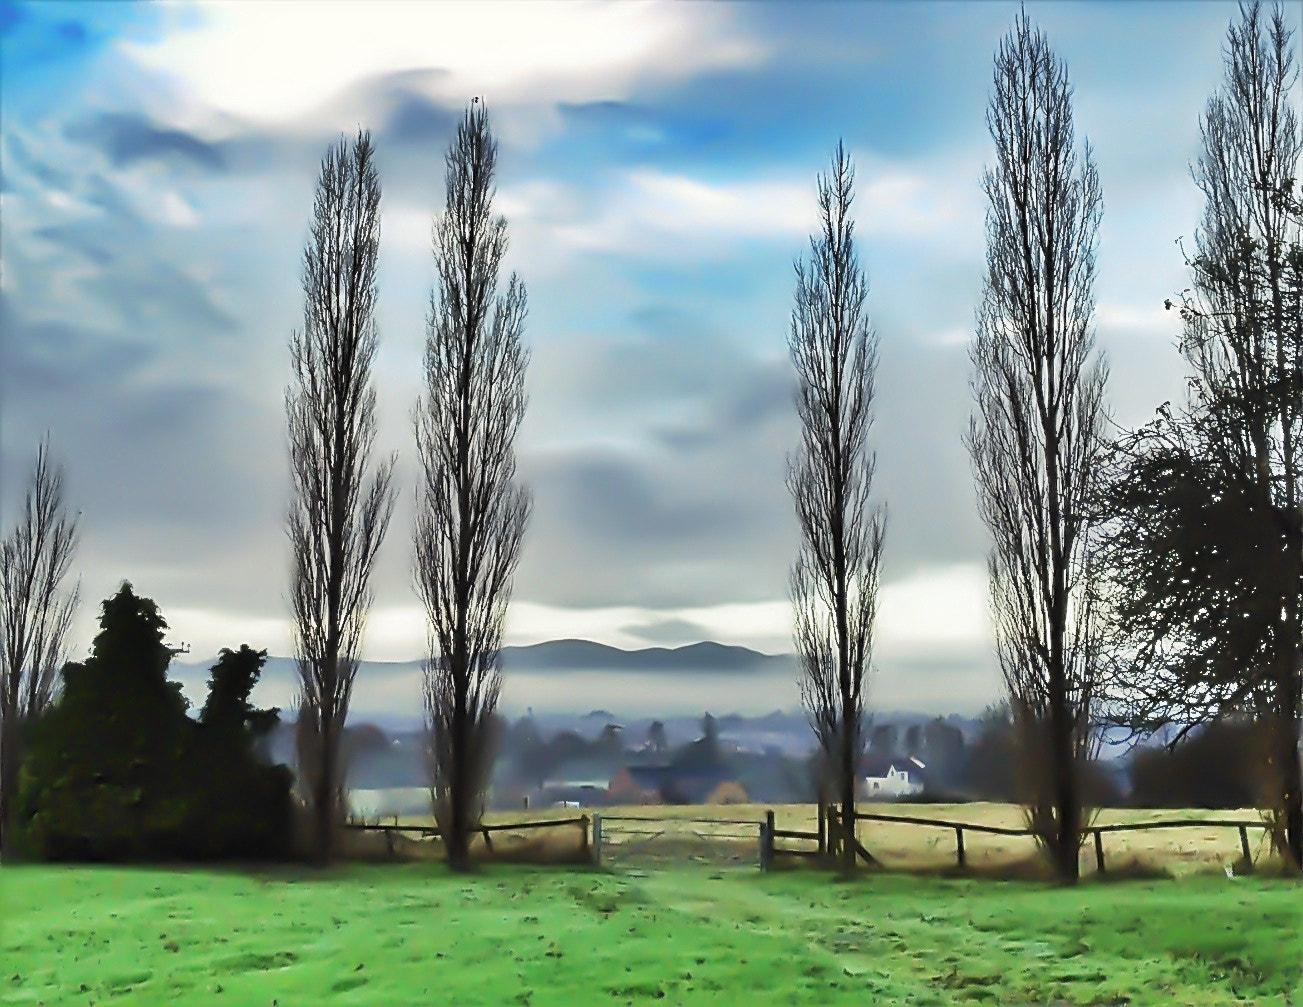 Photograph Malvern mist by Sarah Hughes on 500px